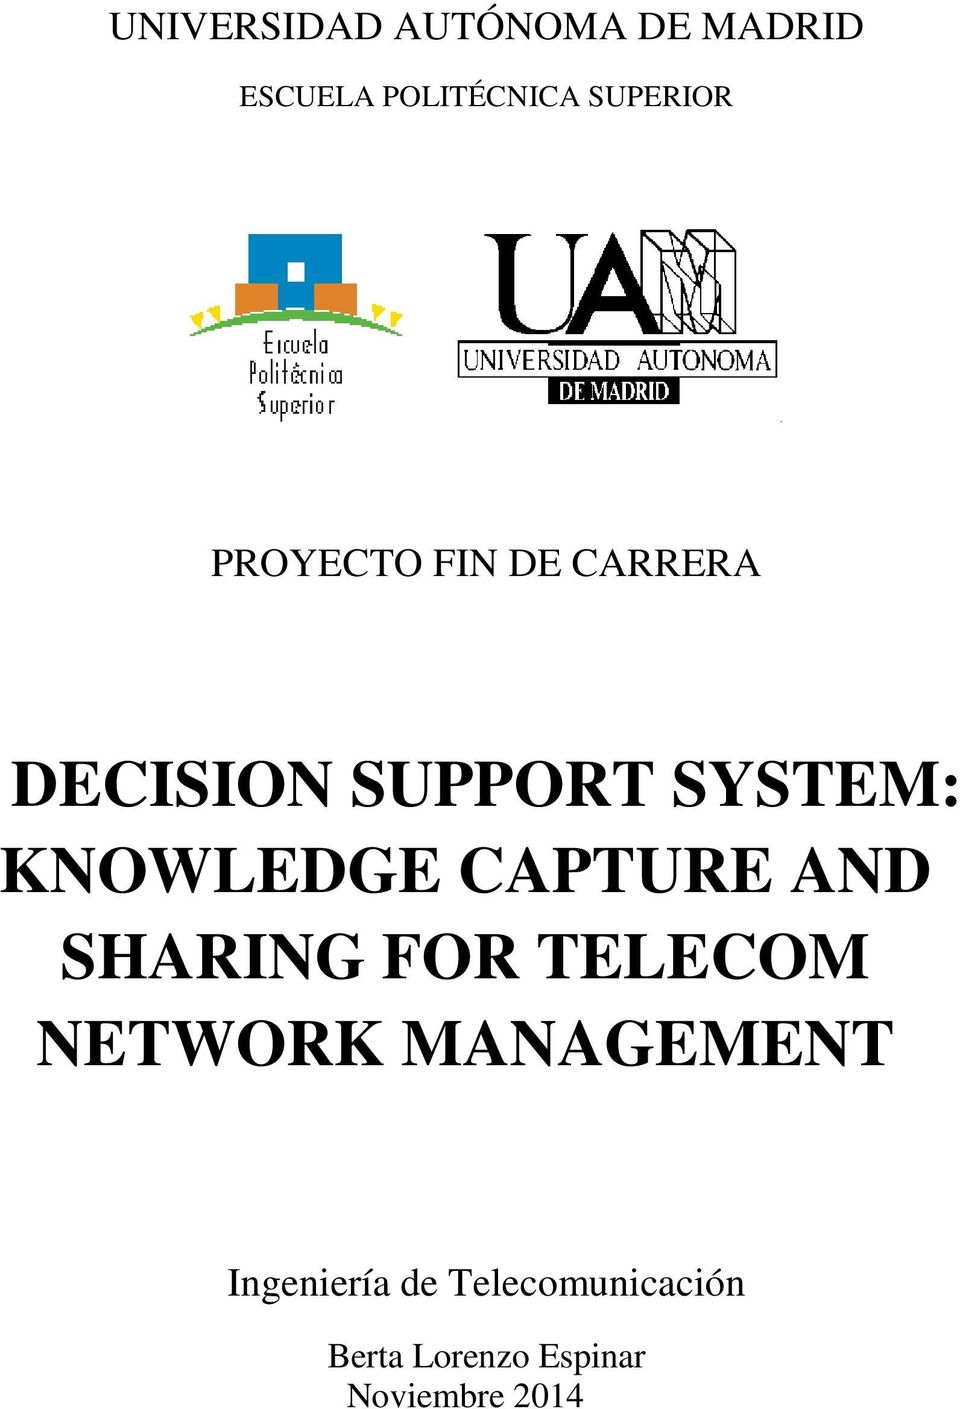 CAPTURE AND SHARING FOR TELECOM NETWORK MANAGEMENT